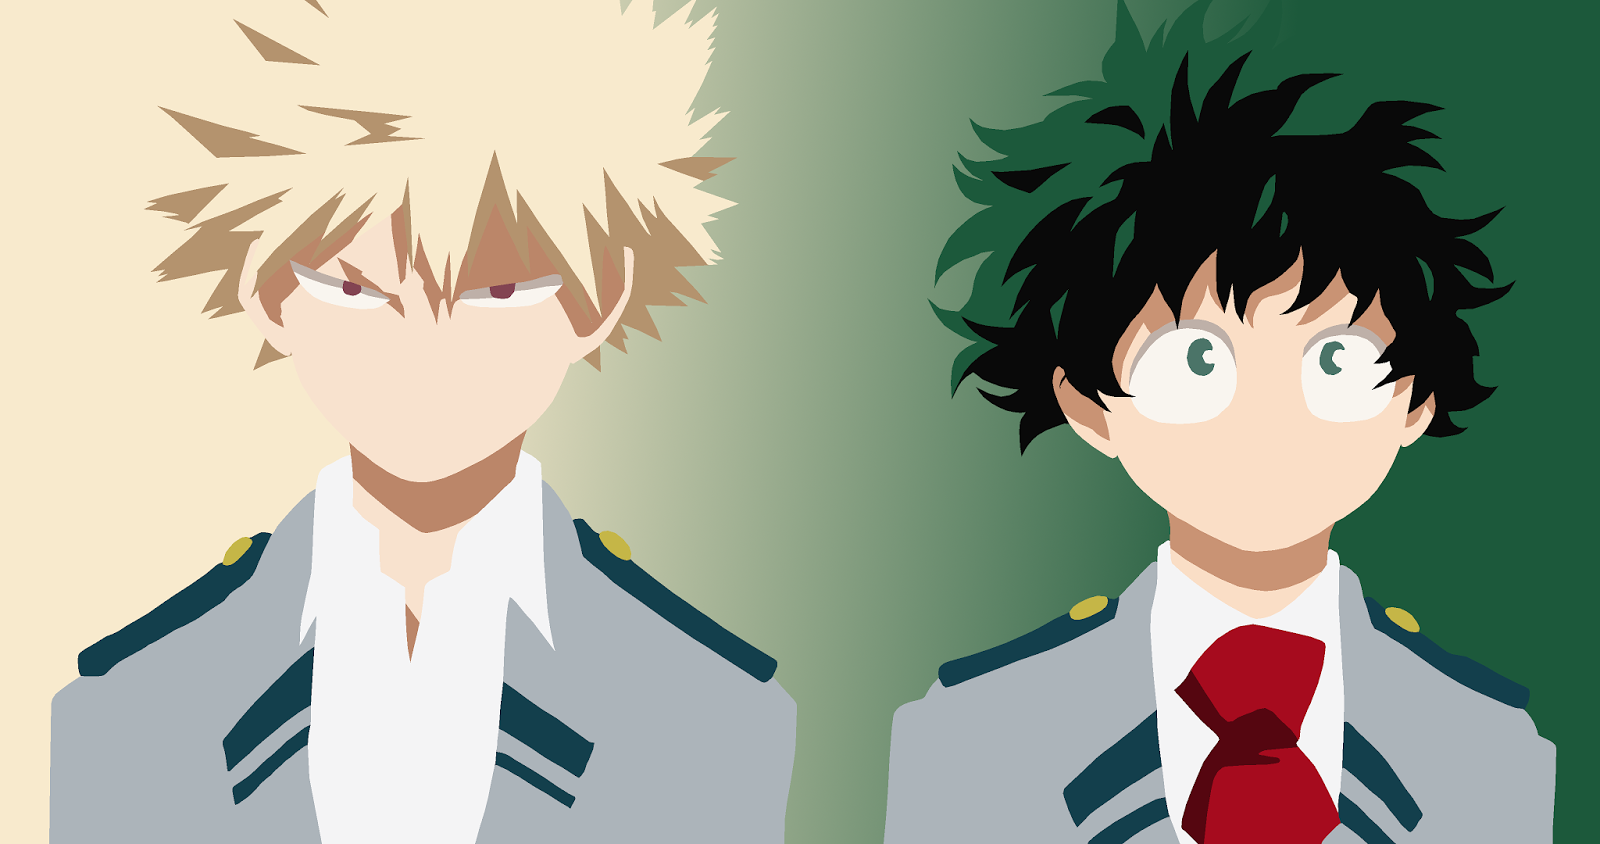 50 Best My Hero Academia Wallpapers Hd 2020 Www Movierulz In 2020